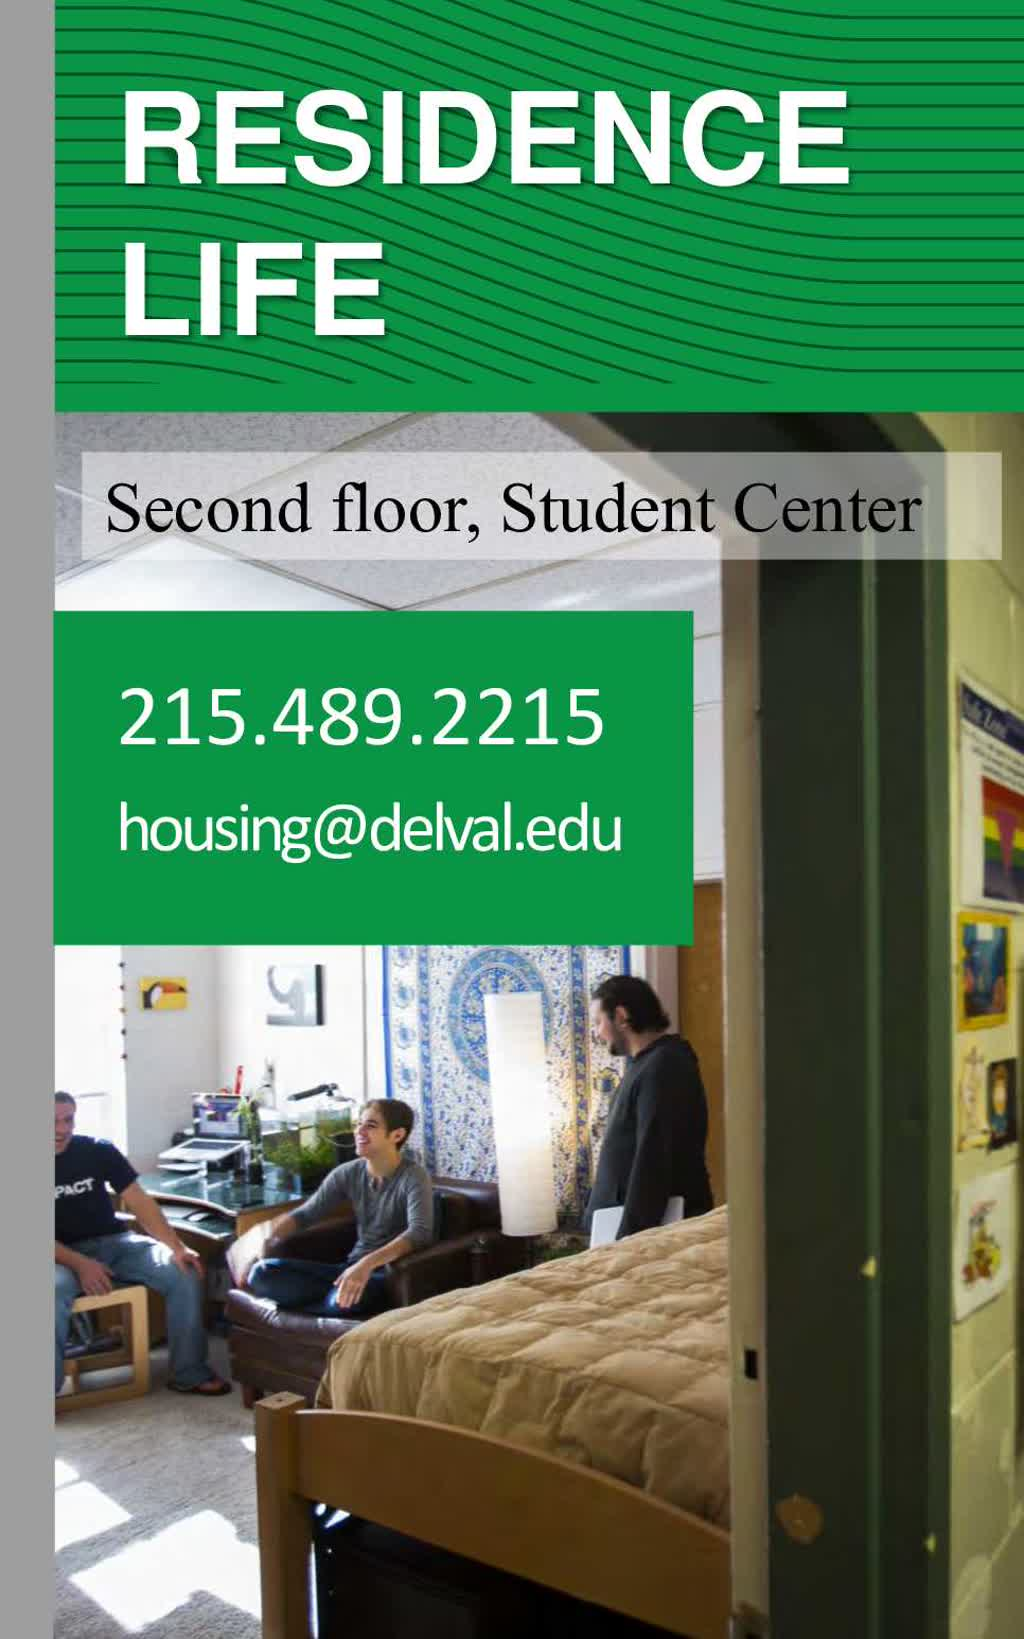 Information regarding Residence Life Office is as follows Start date is May 22 2018 and End Date is May 31 2019 and Group Name is Apogee and File is Browse (for all other file formats) and Name is Devin Woodard and Email is devinandre.woodard@gmail.com and File Name is ResLife2_comp2_comp.jpg and Affiliation is Other and Name of Ad/Event is Residence Life Office and Screen Location is Side and